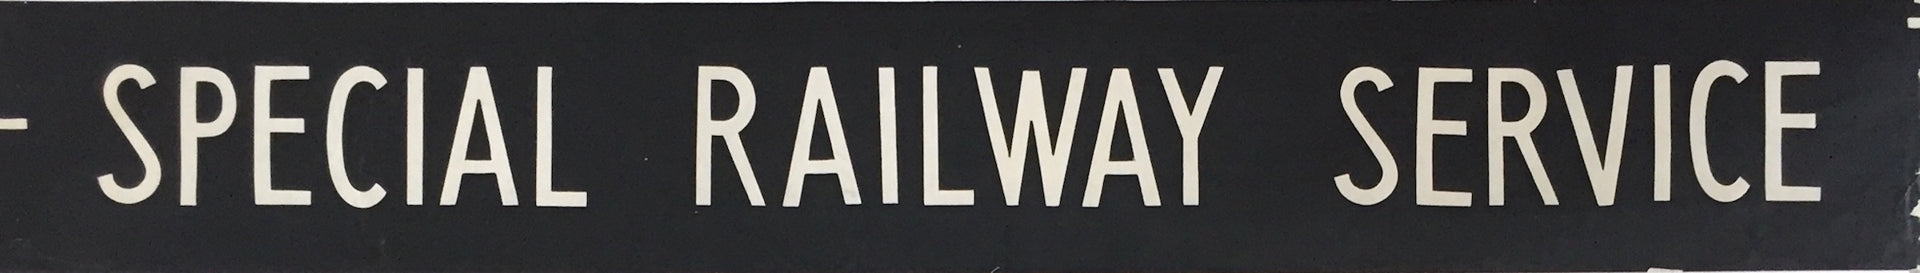 Special Railway Service Bus Blind